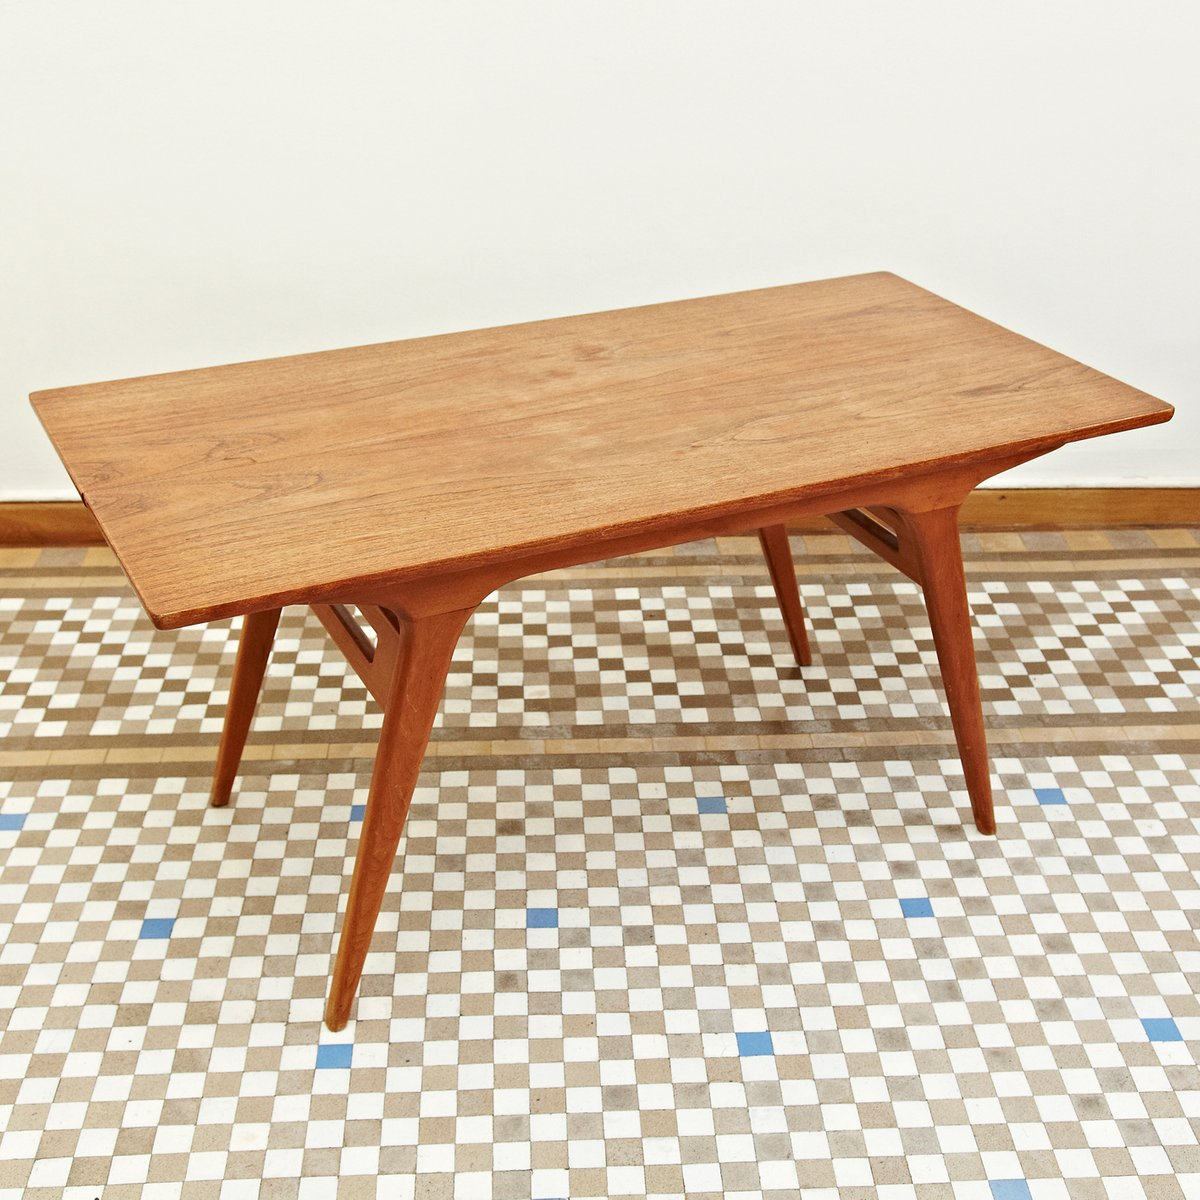 Coffee Table 1950s: Scandinavian Coffee Table From Tingstroms, 1950s For Sale